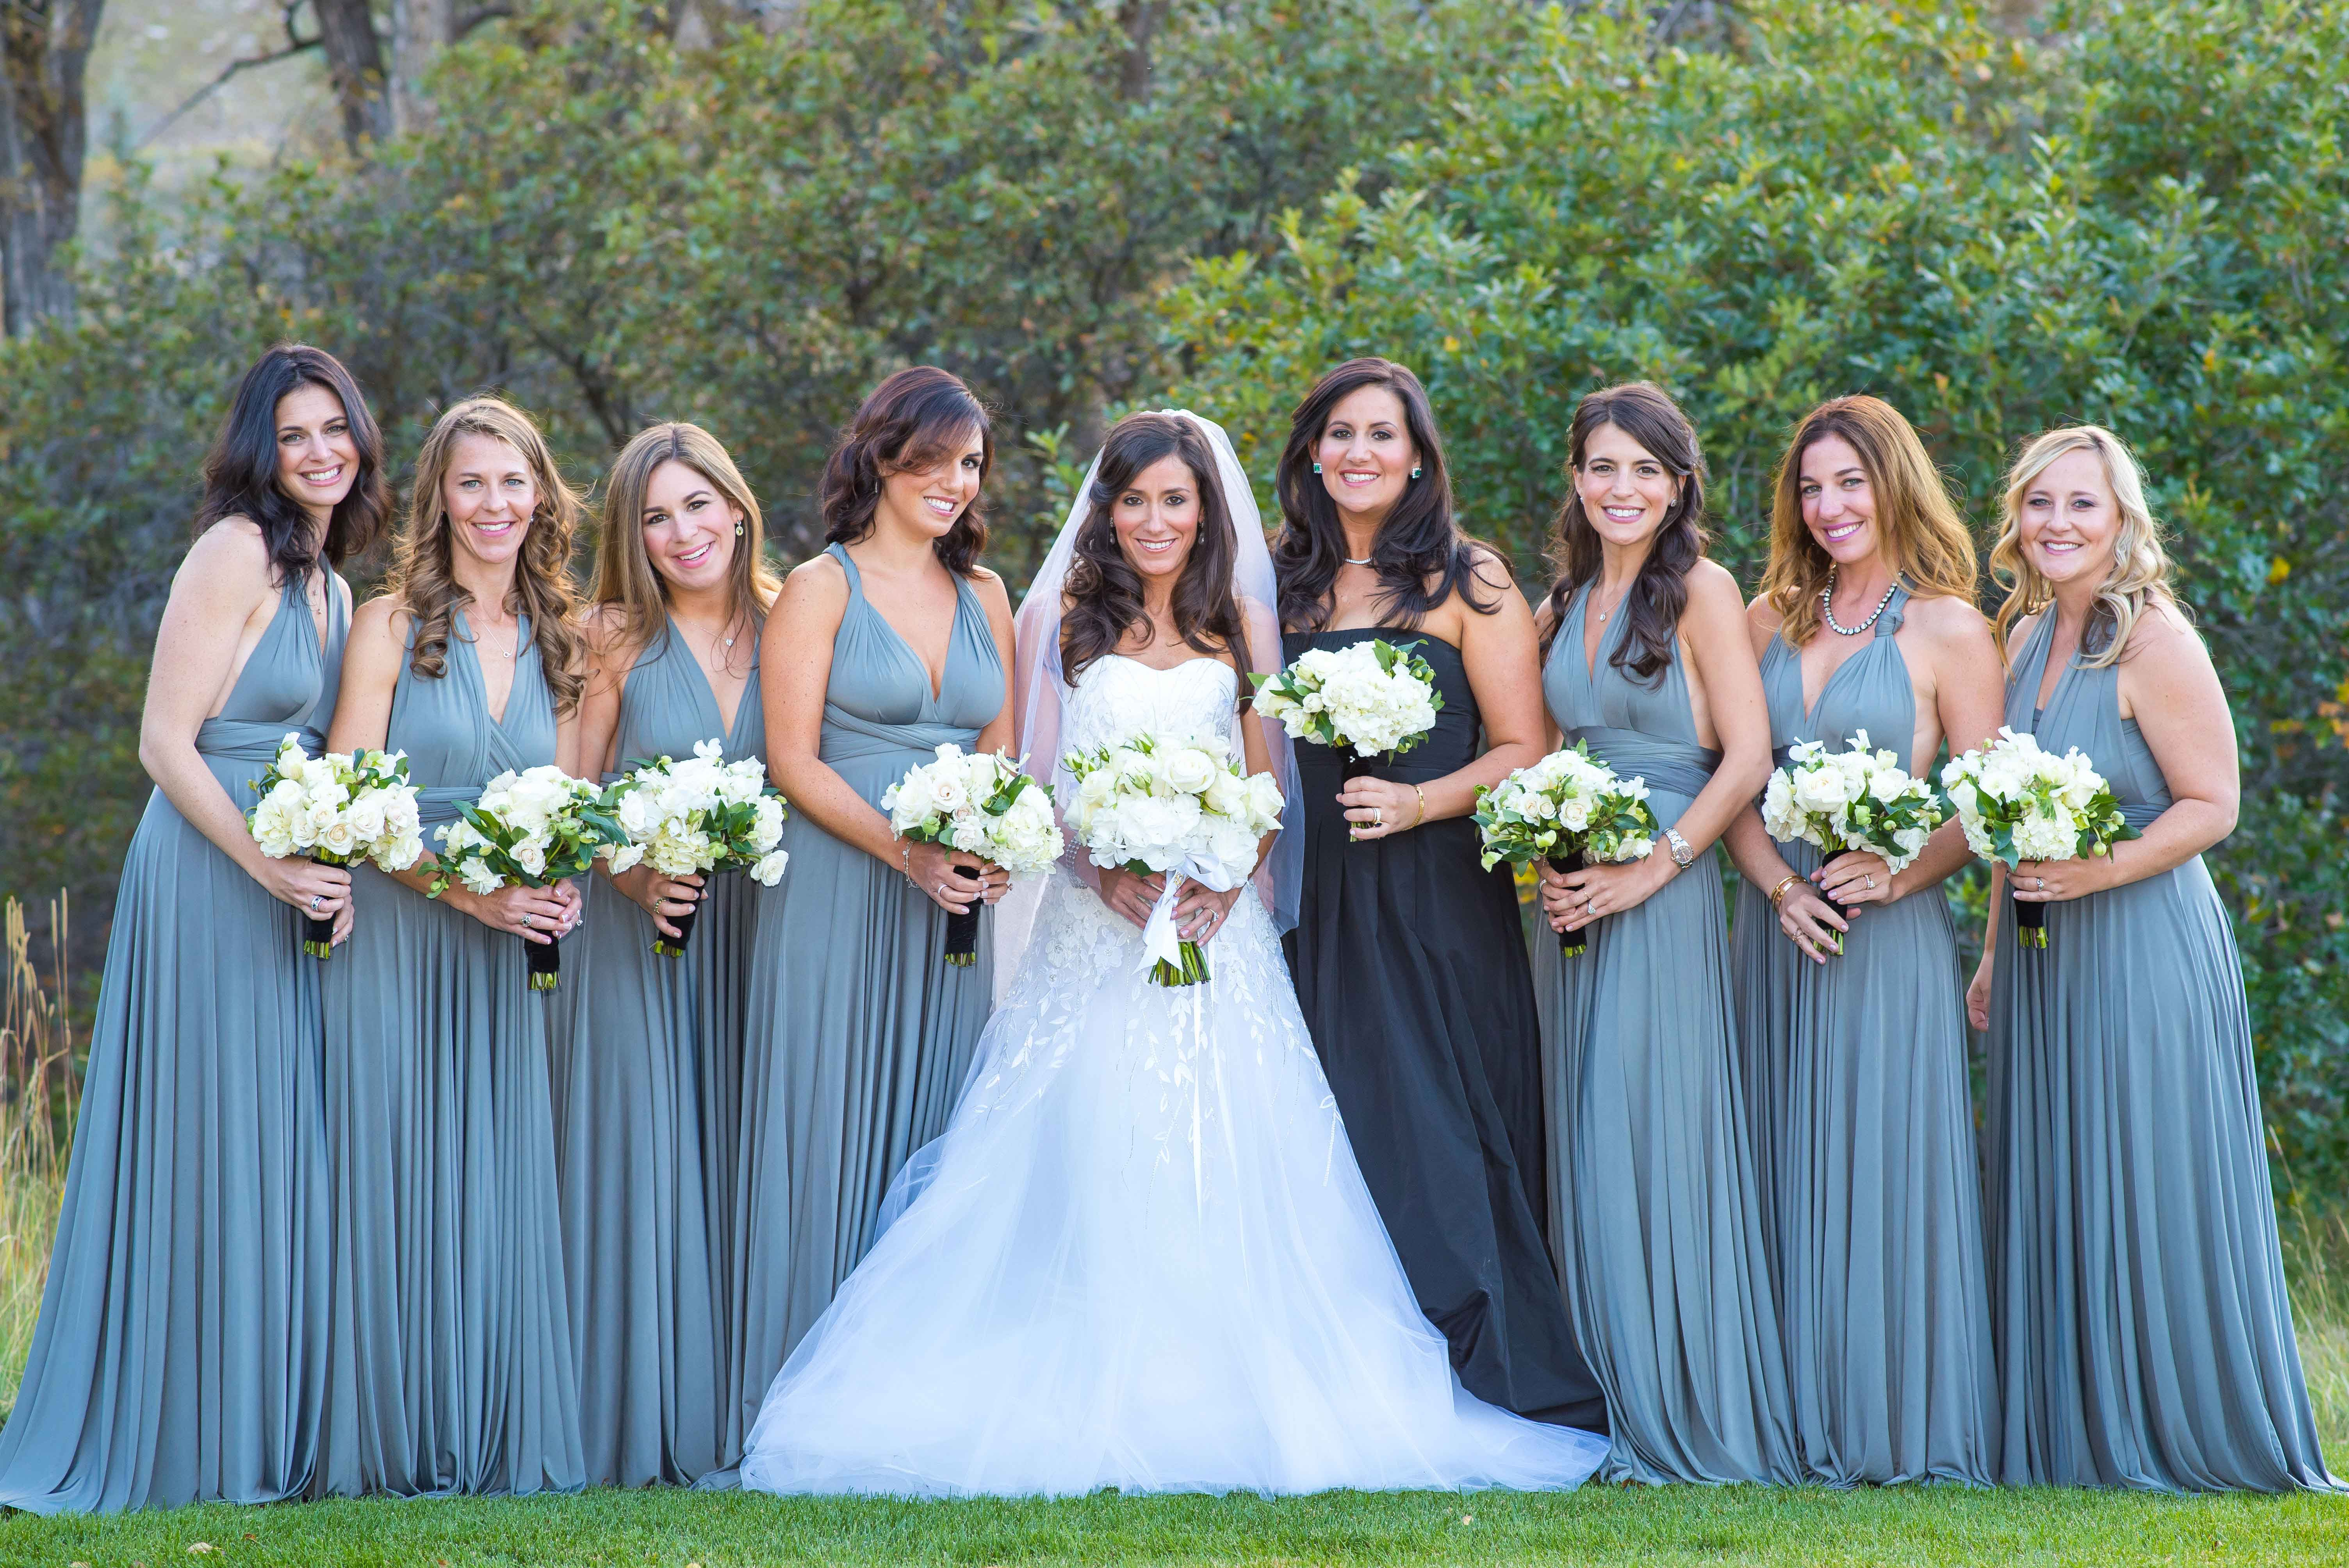 6 different bridesmaid dress concepts to make your maid of honor photo by brett butterstein photography floral event design by bella flora of dallas planning design by diamond affairs special events ombrellifo Gallery